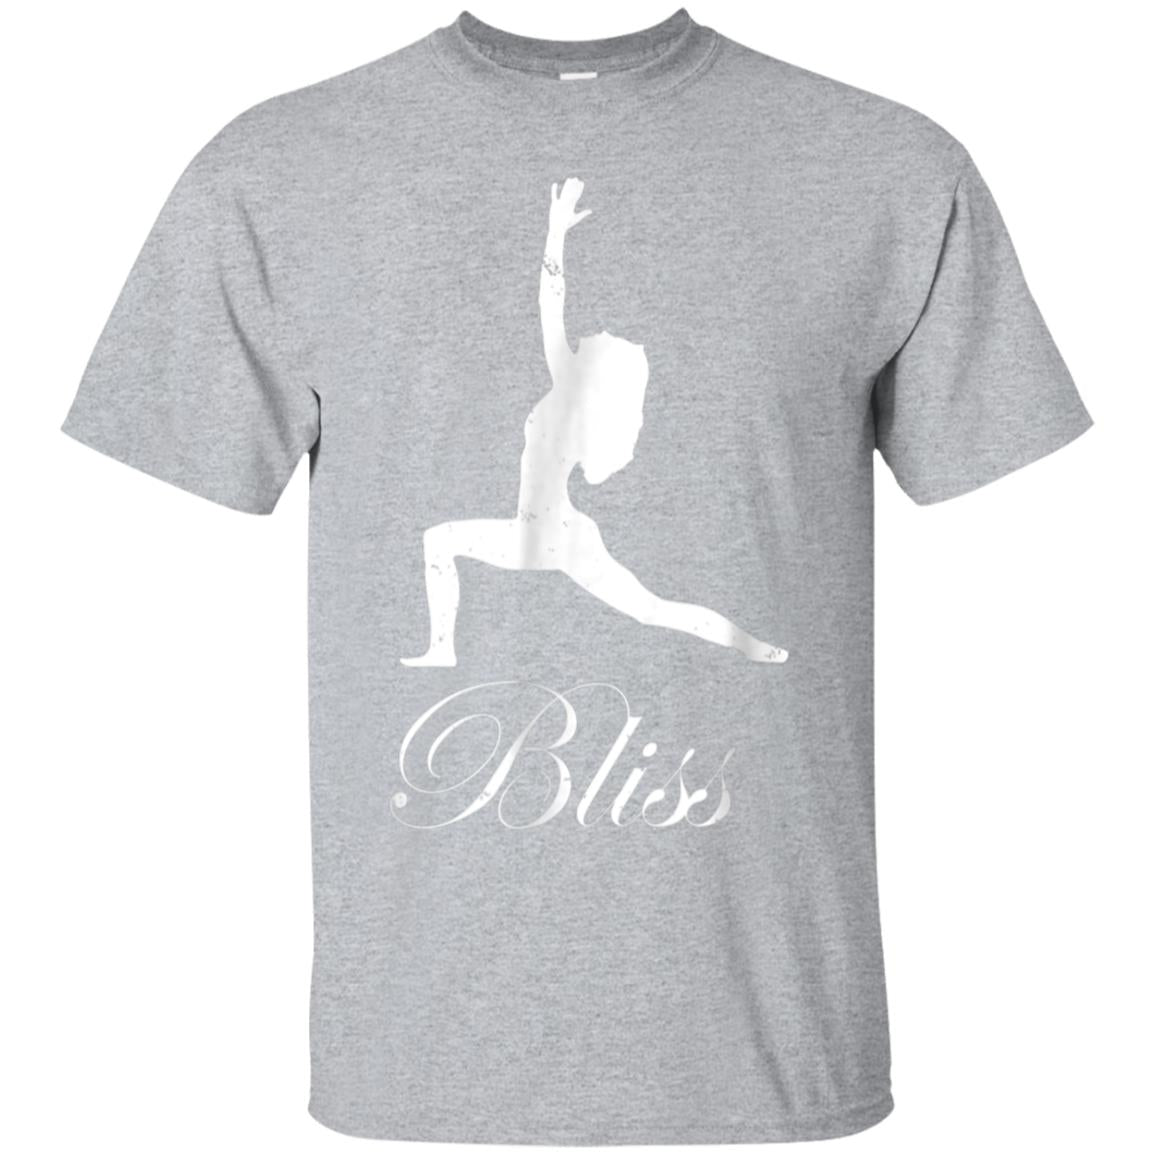 Bliss Warrior T-shirt  Yoga Peace and Meditation 99promocode